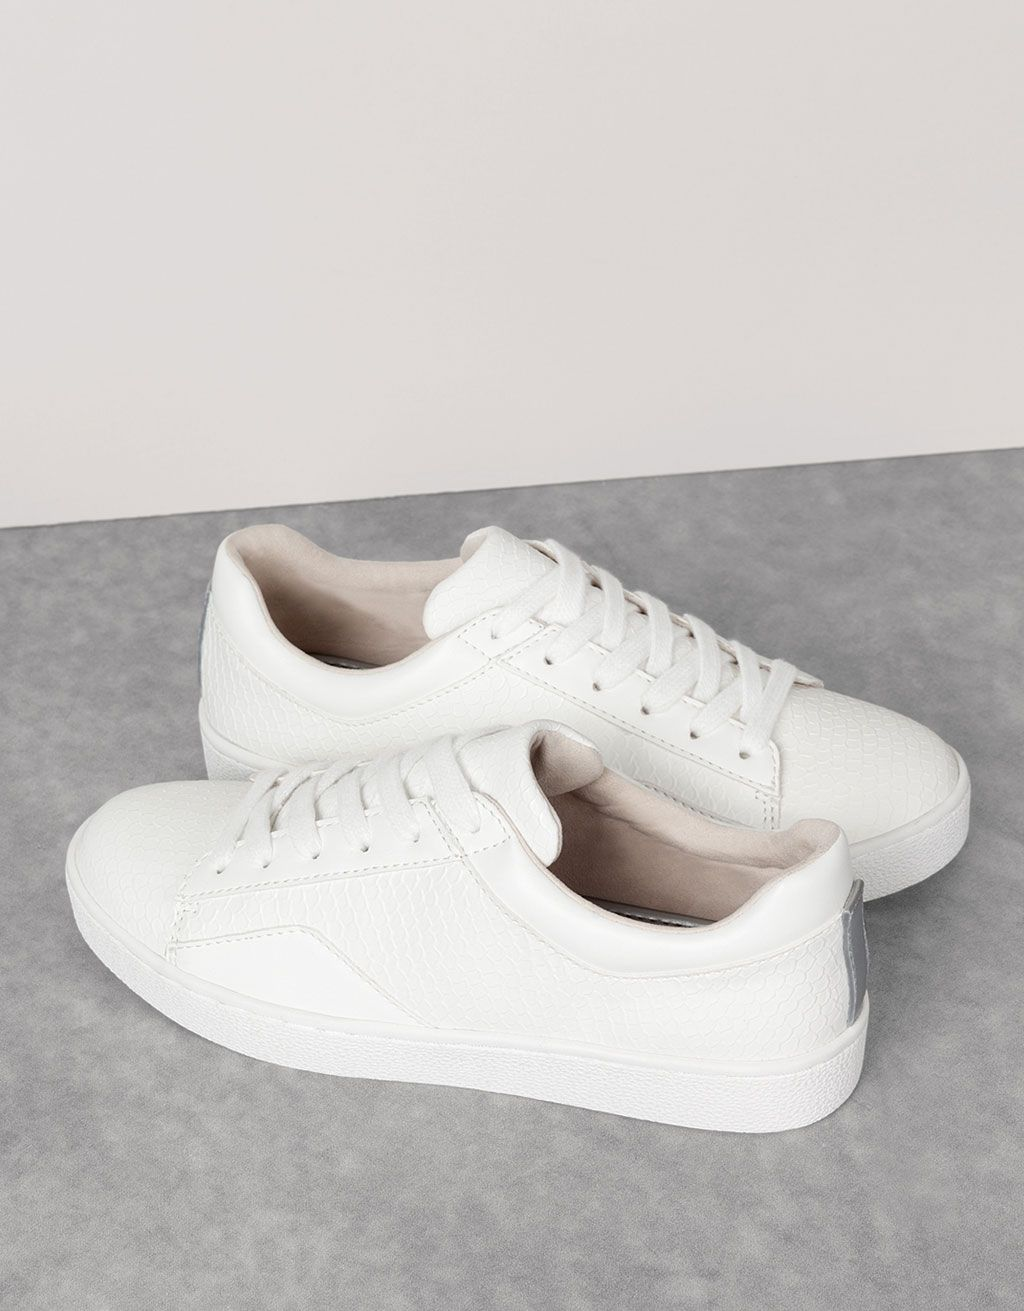 new products b4c75 d3781 Embossed single-colour sneakers - Trainers - Bershka Spain Adidas Stan Smith,  Woman Shoes